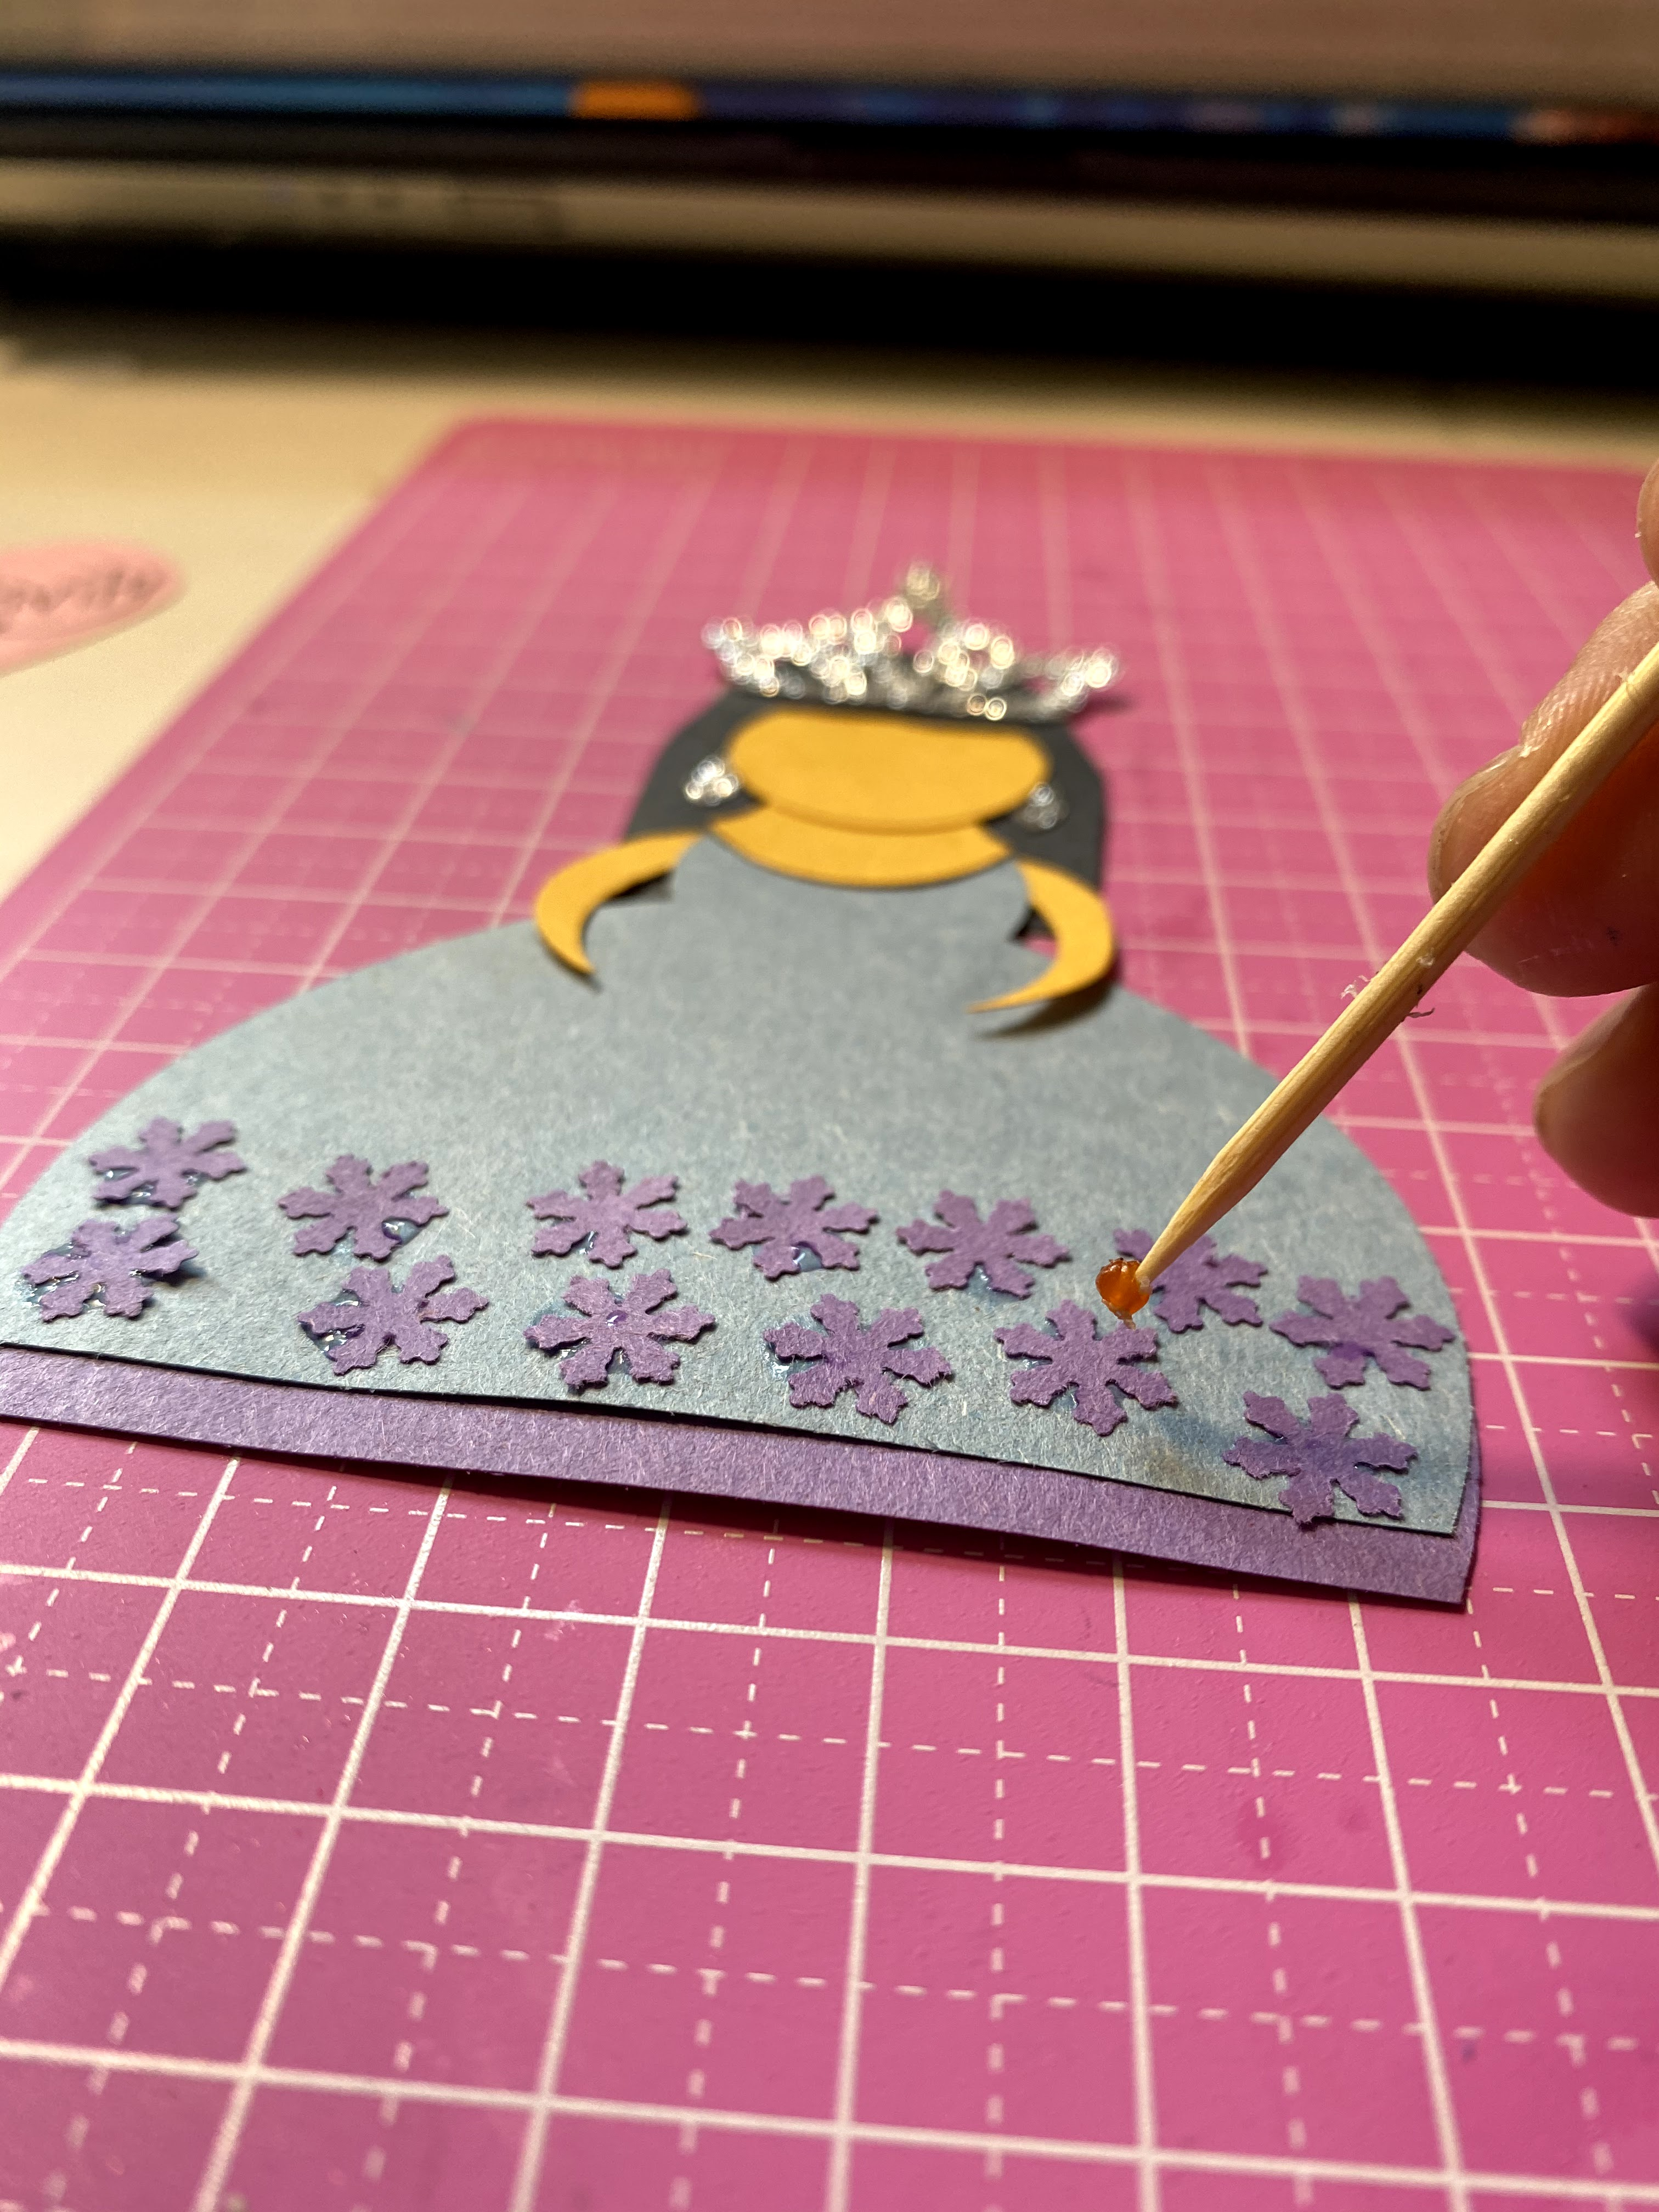 Adding small snowflake paper punches to decorate the paper princess dress.